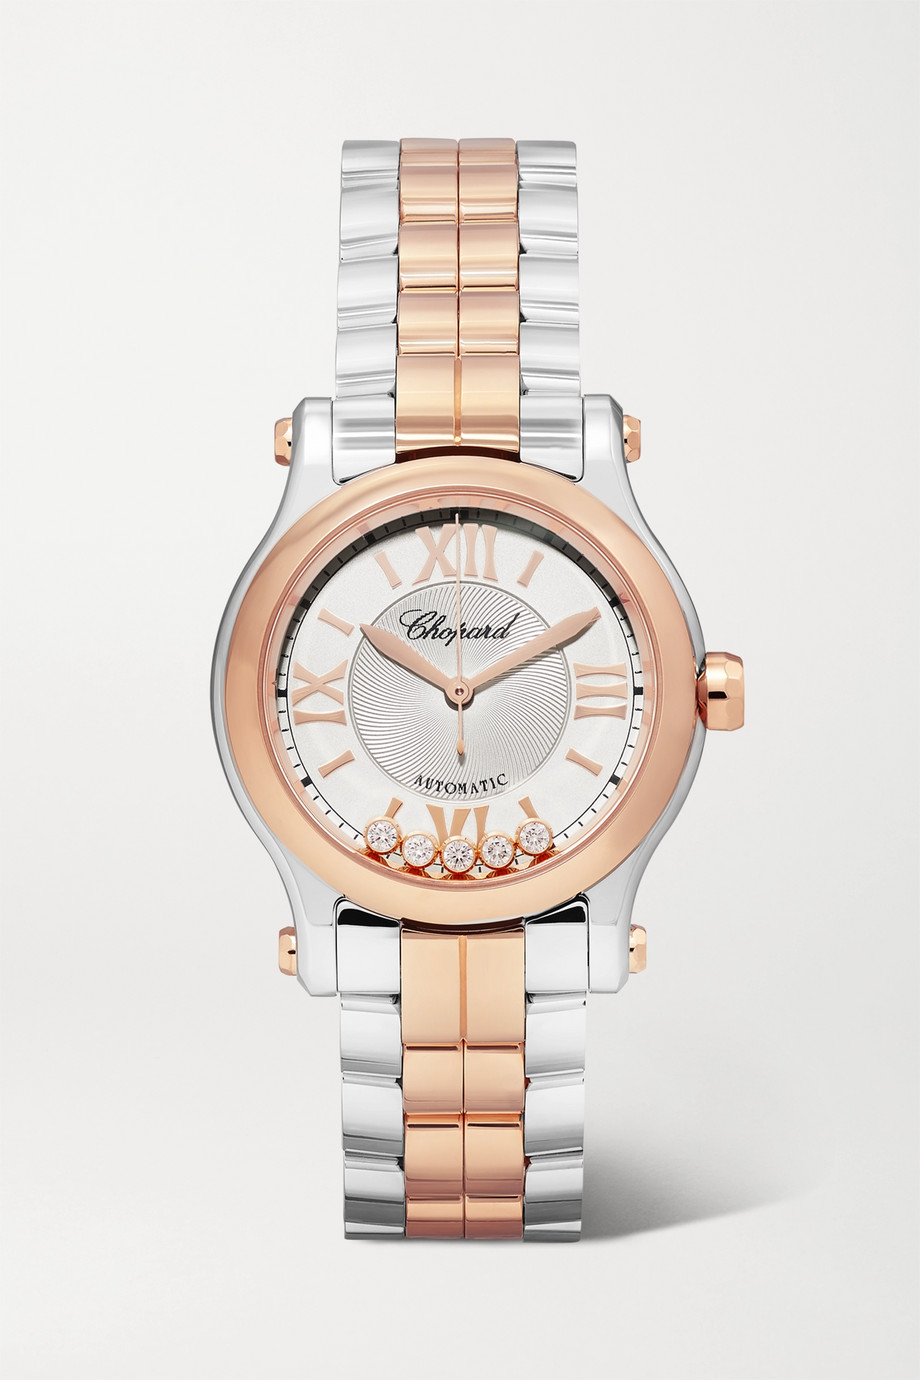 Chopard Montre en or rose 18 carats, acier inoxydable, diamants et nacre Happy Sport Automatique 30 mm